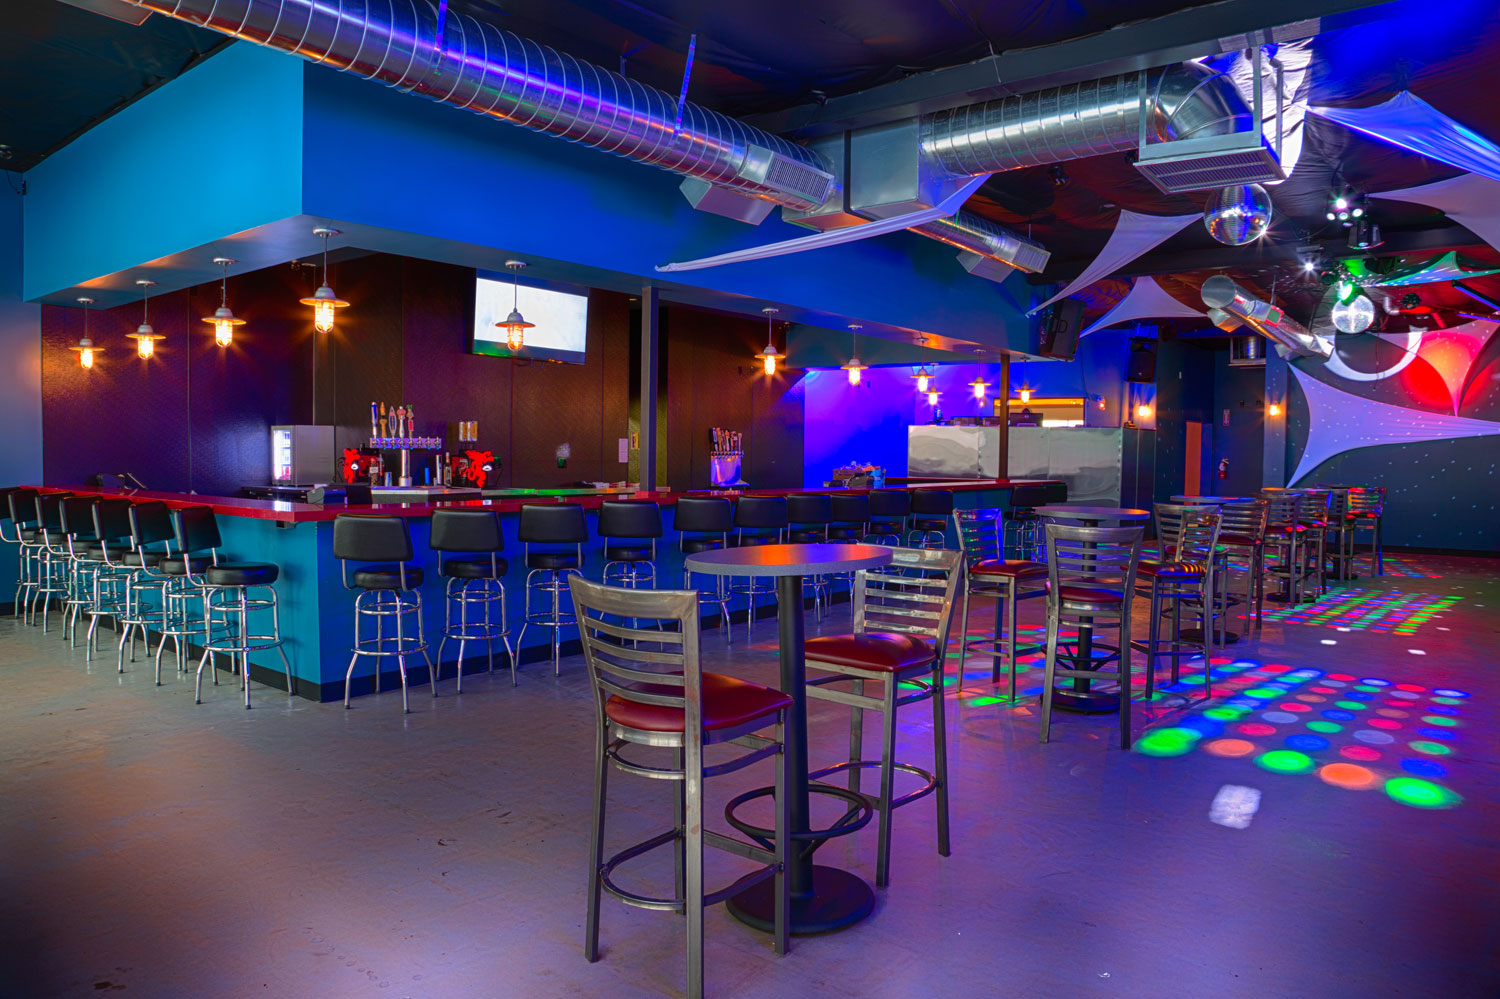 Chill Lounge 216 S Indian Canyon Dr Palm Springs Ca 92262 Yp Com